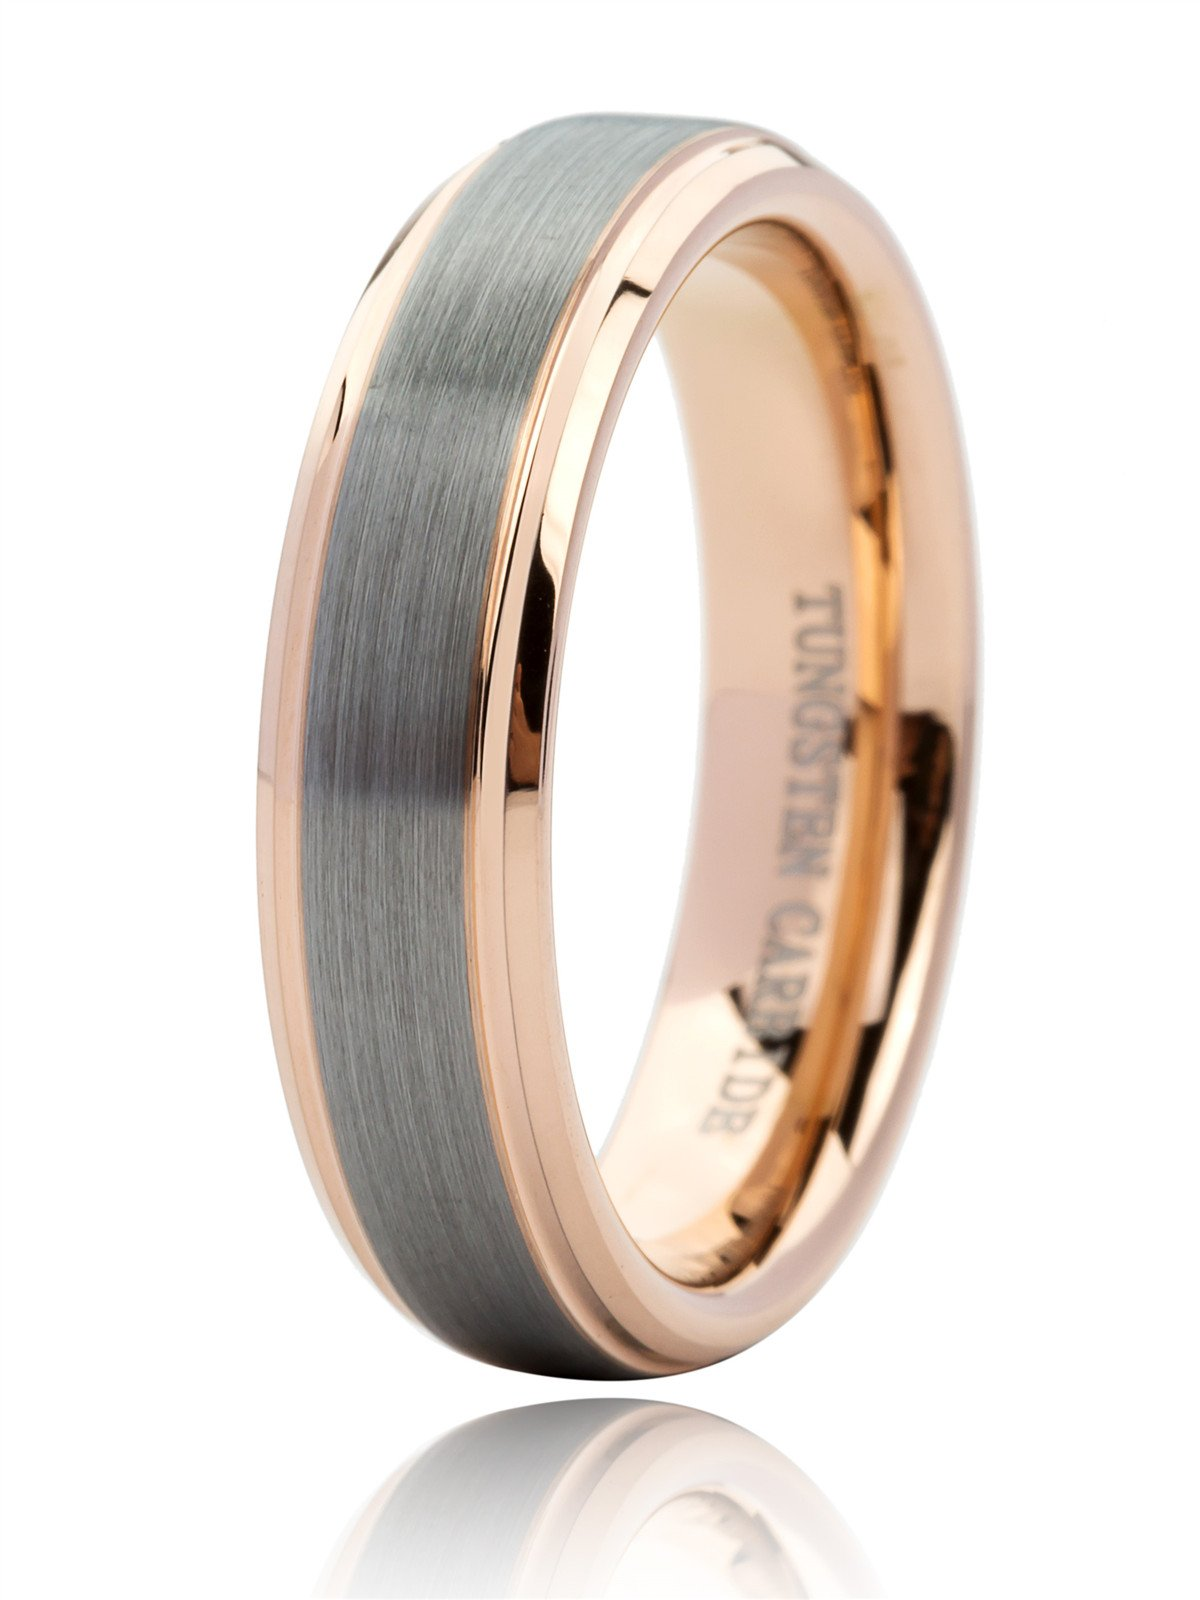 Just Lsy Unisex 18K Rose Gold Plated Tungsten Wedding Band Ring 6mm for Men Women Beveled Edge Brushed Polished Size 10.5 Lsy-016